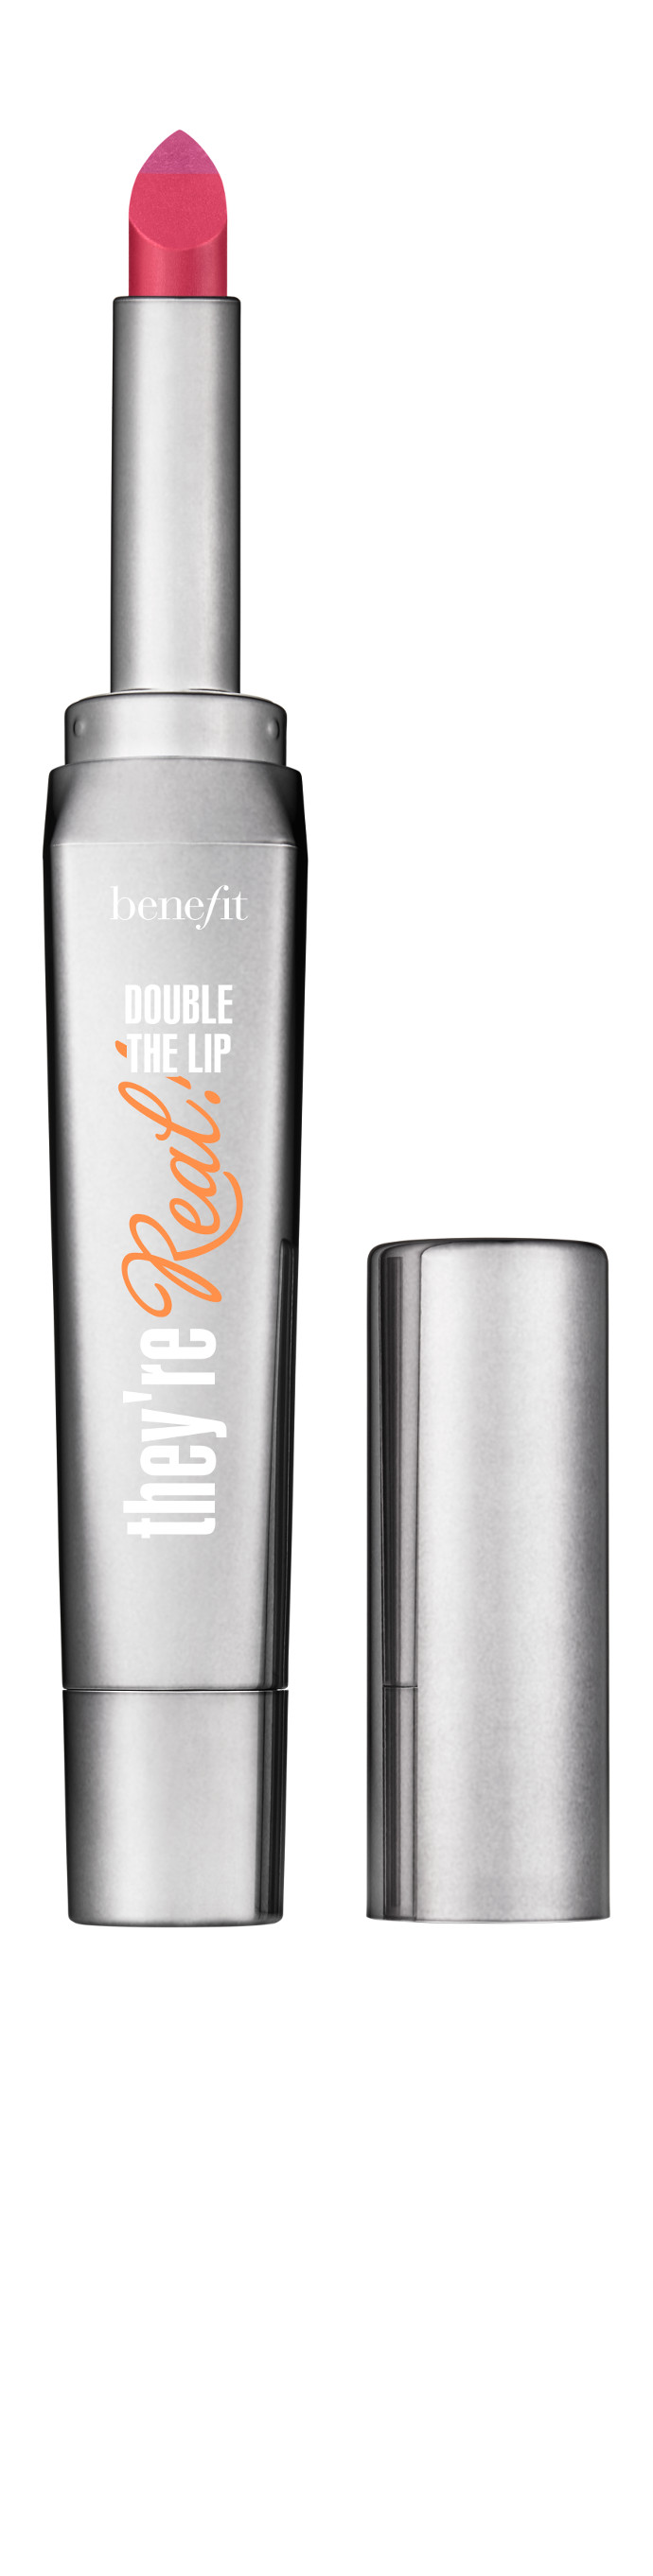 Benefit They're Real! Double the Lip